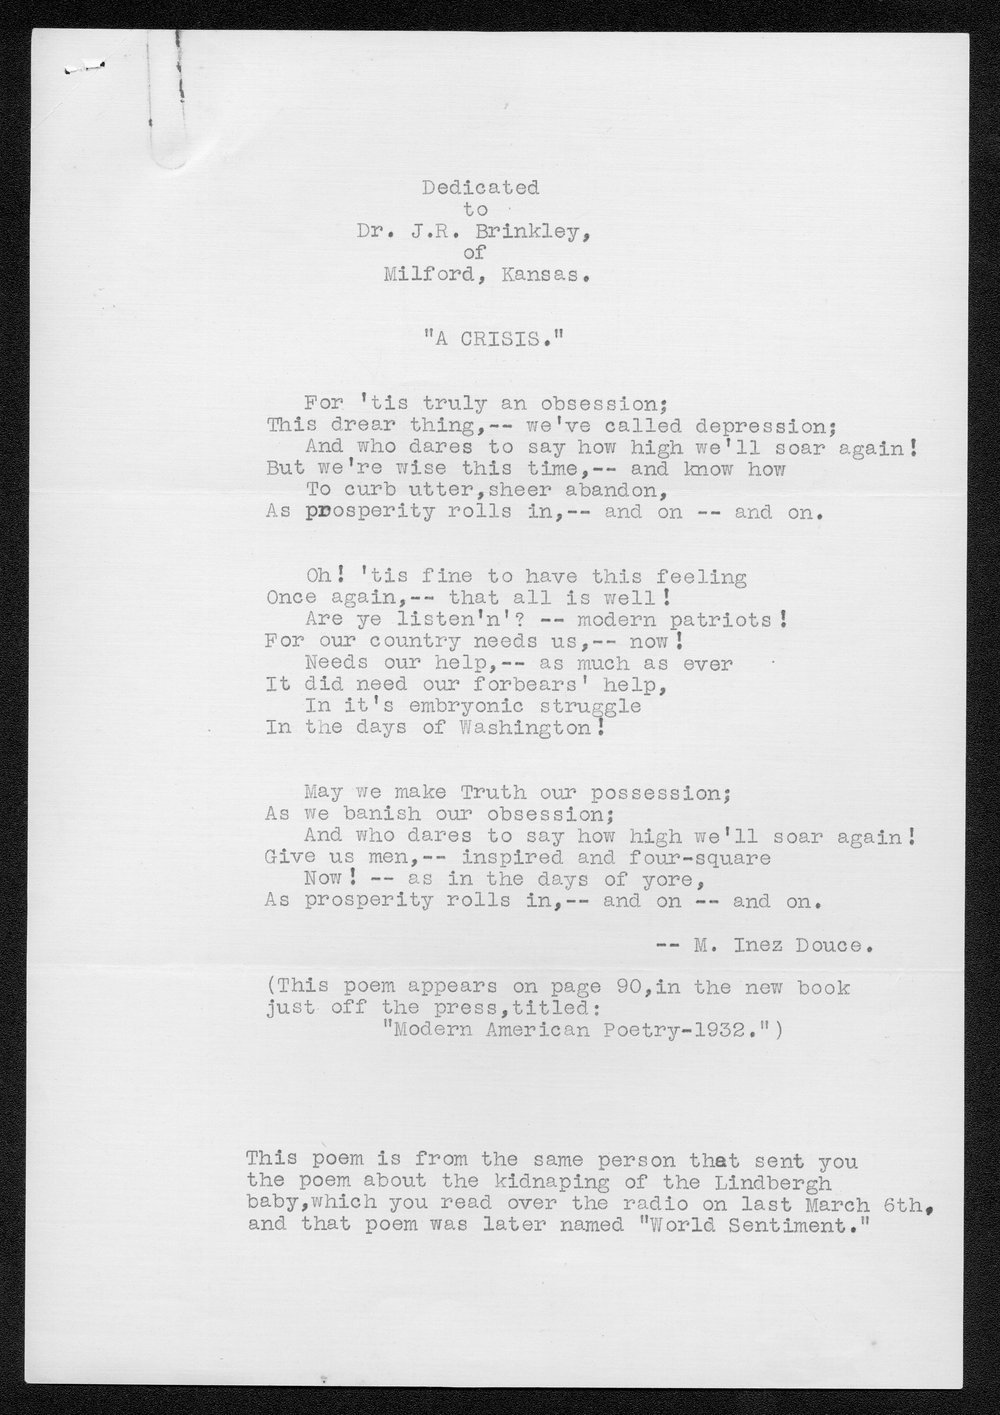 John R. Brinkley correspondence and political material - 2